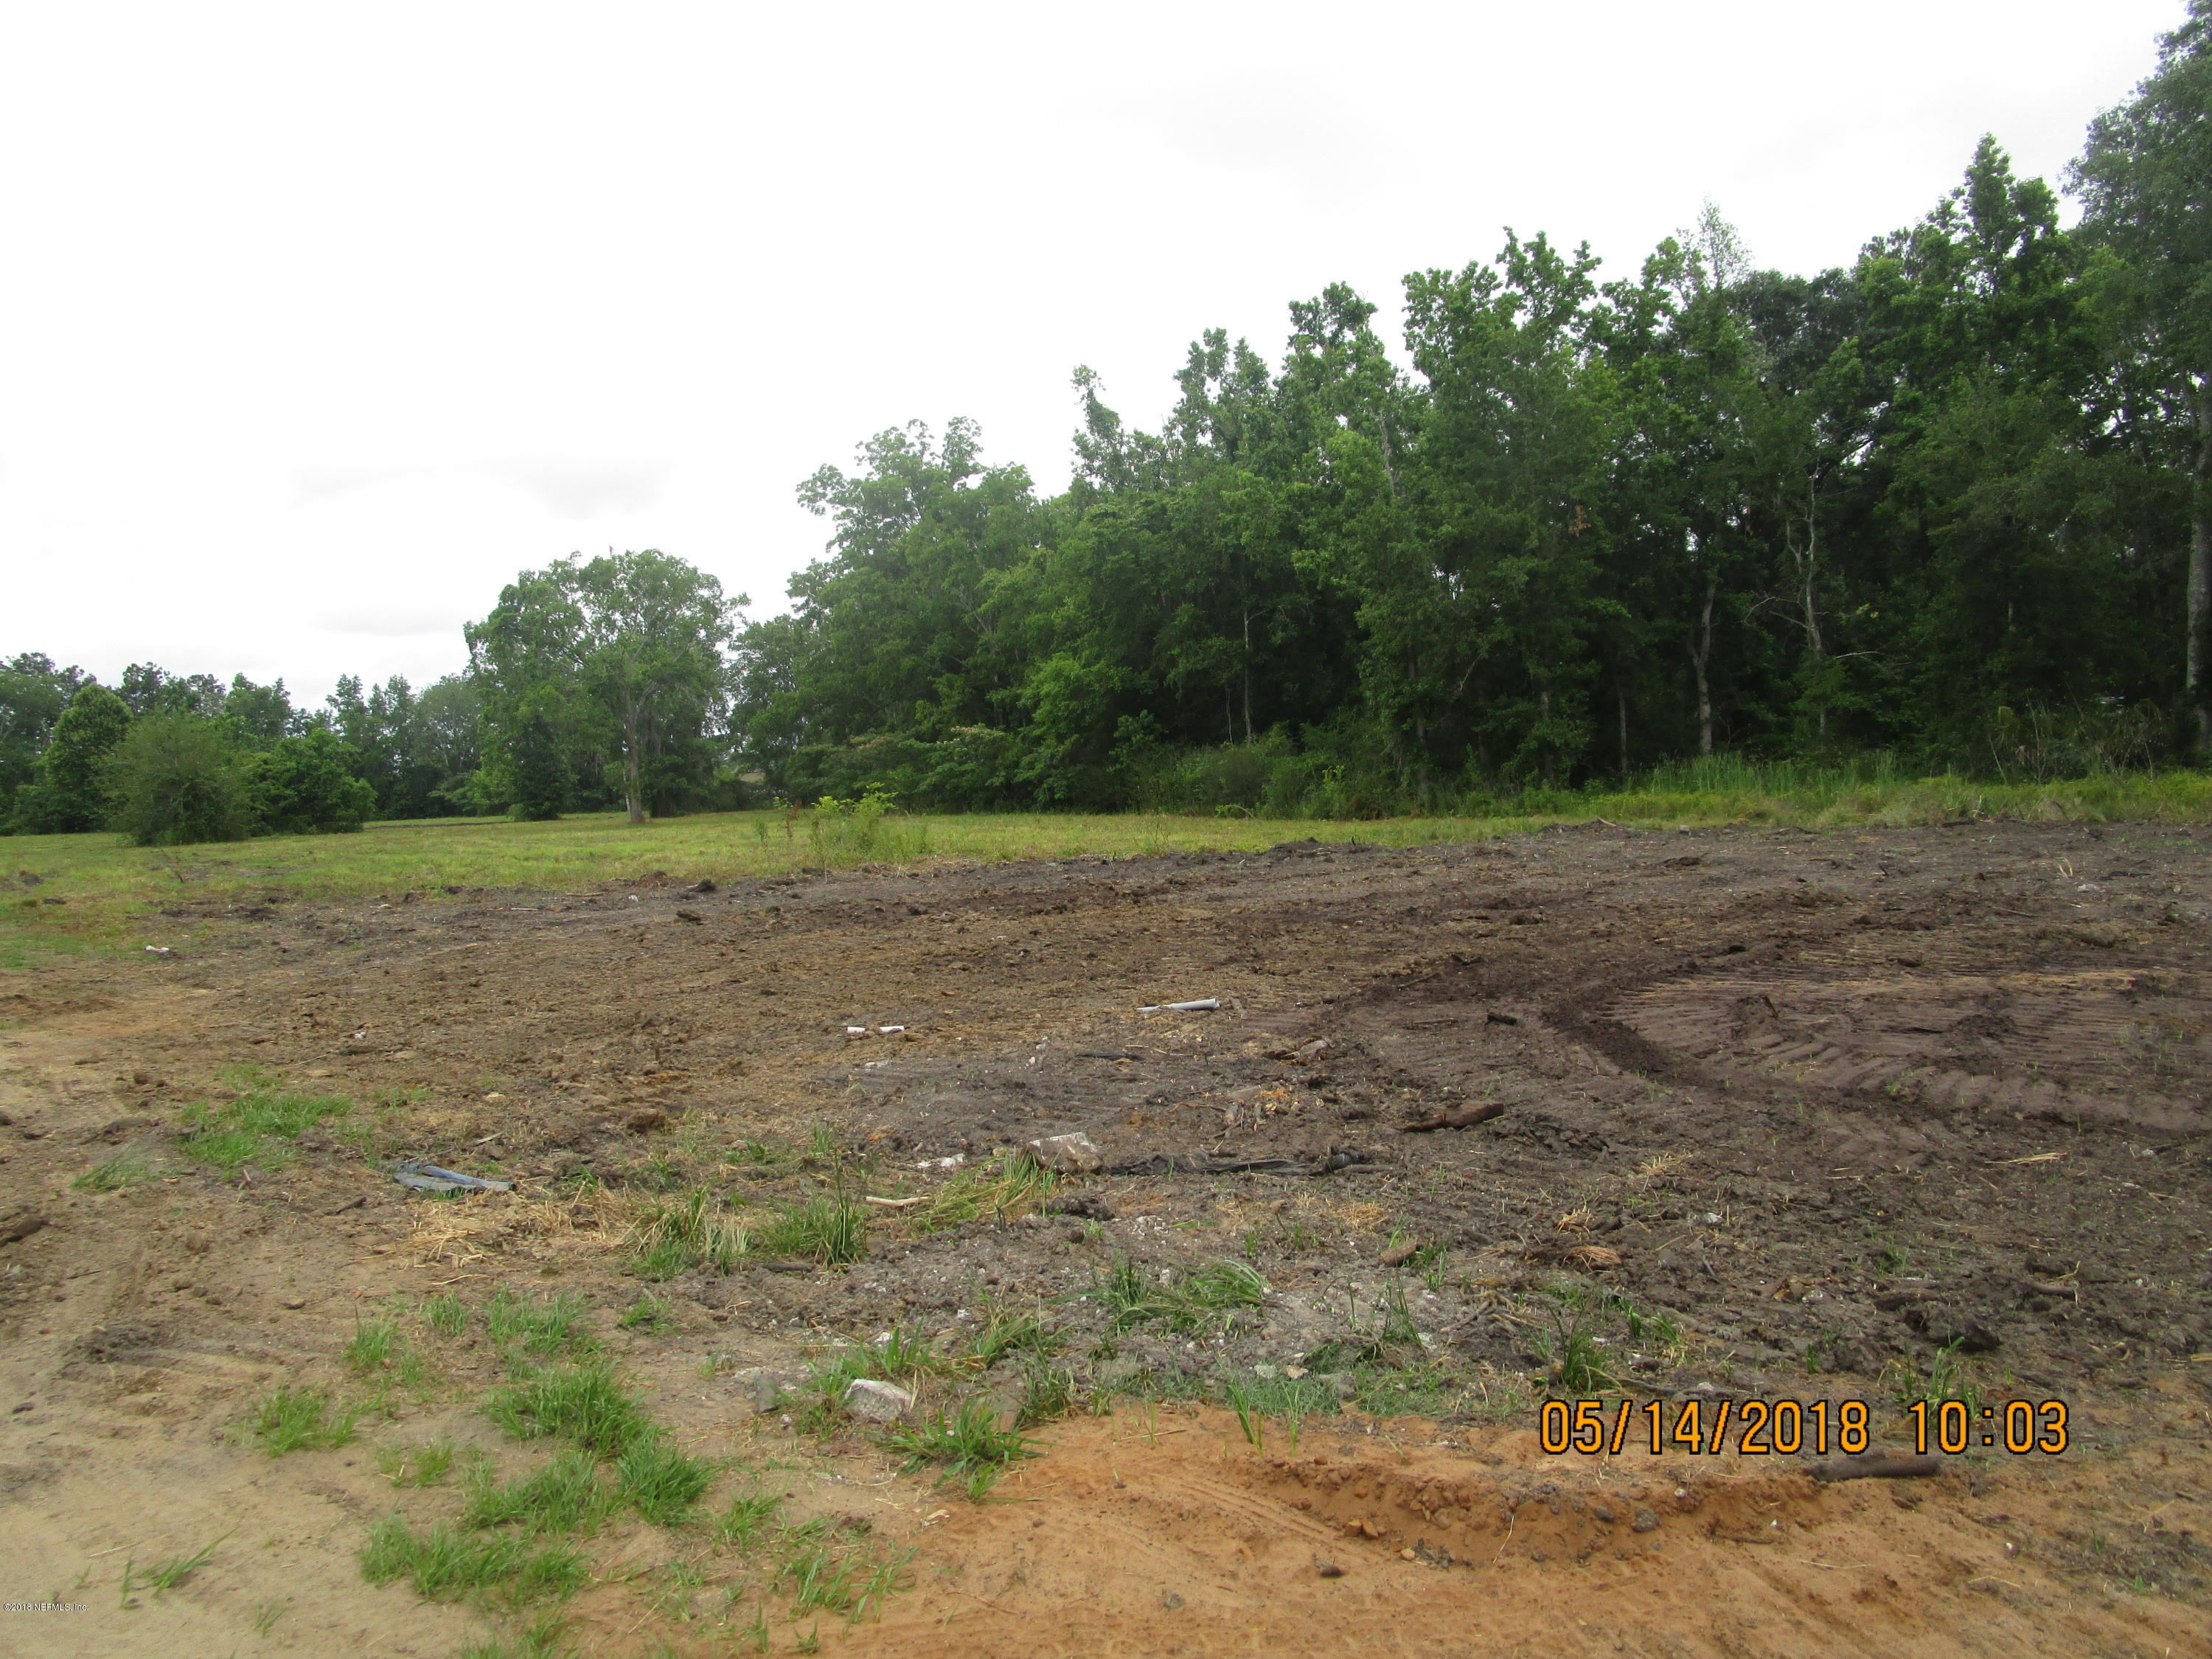 0 STATE ROAD 200, CALLAHAN, FLORIDA 32011, ,Vacant land,For sale,STATE ROAD 200,917144